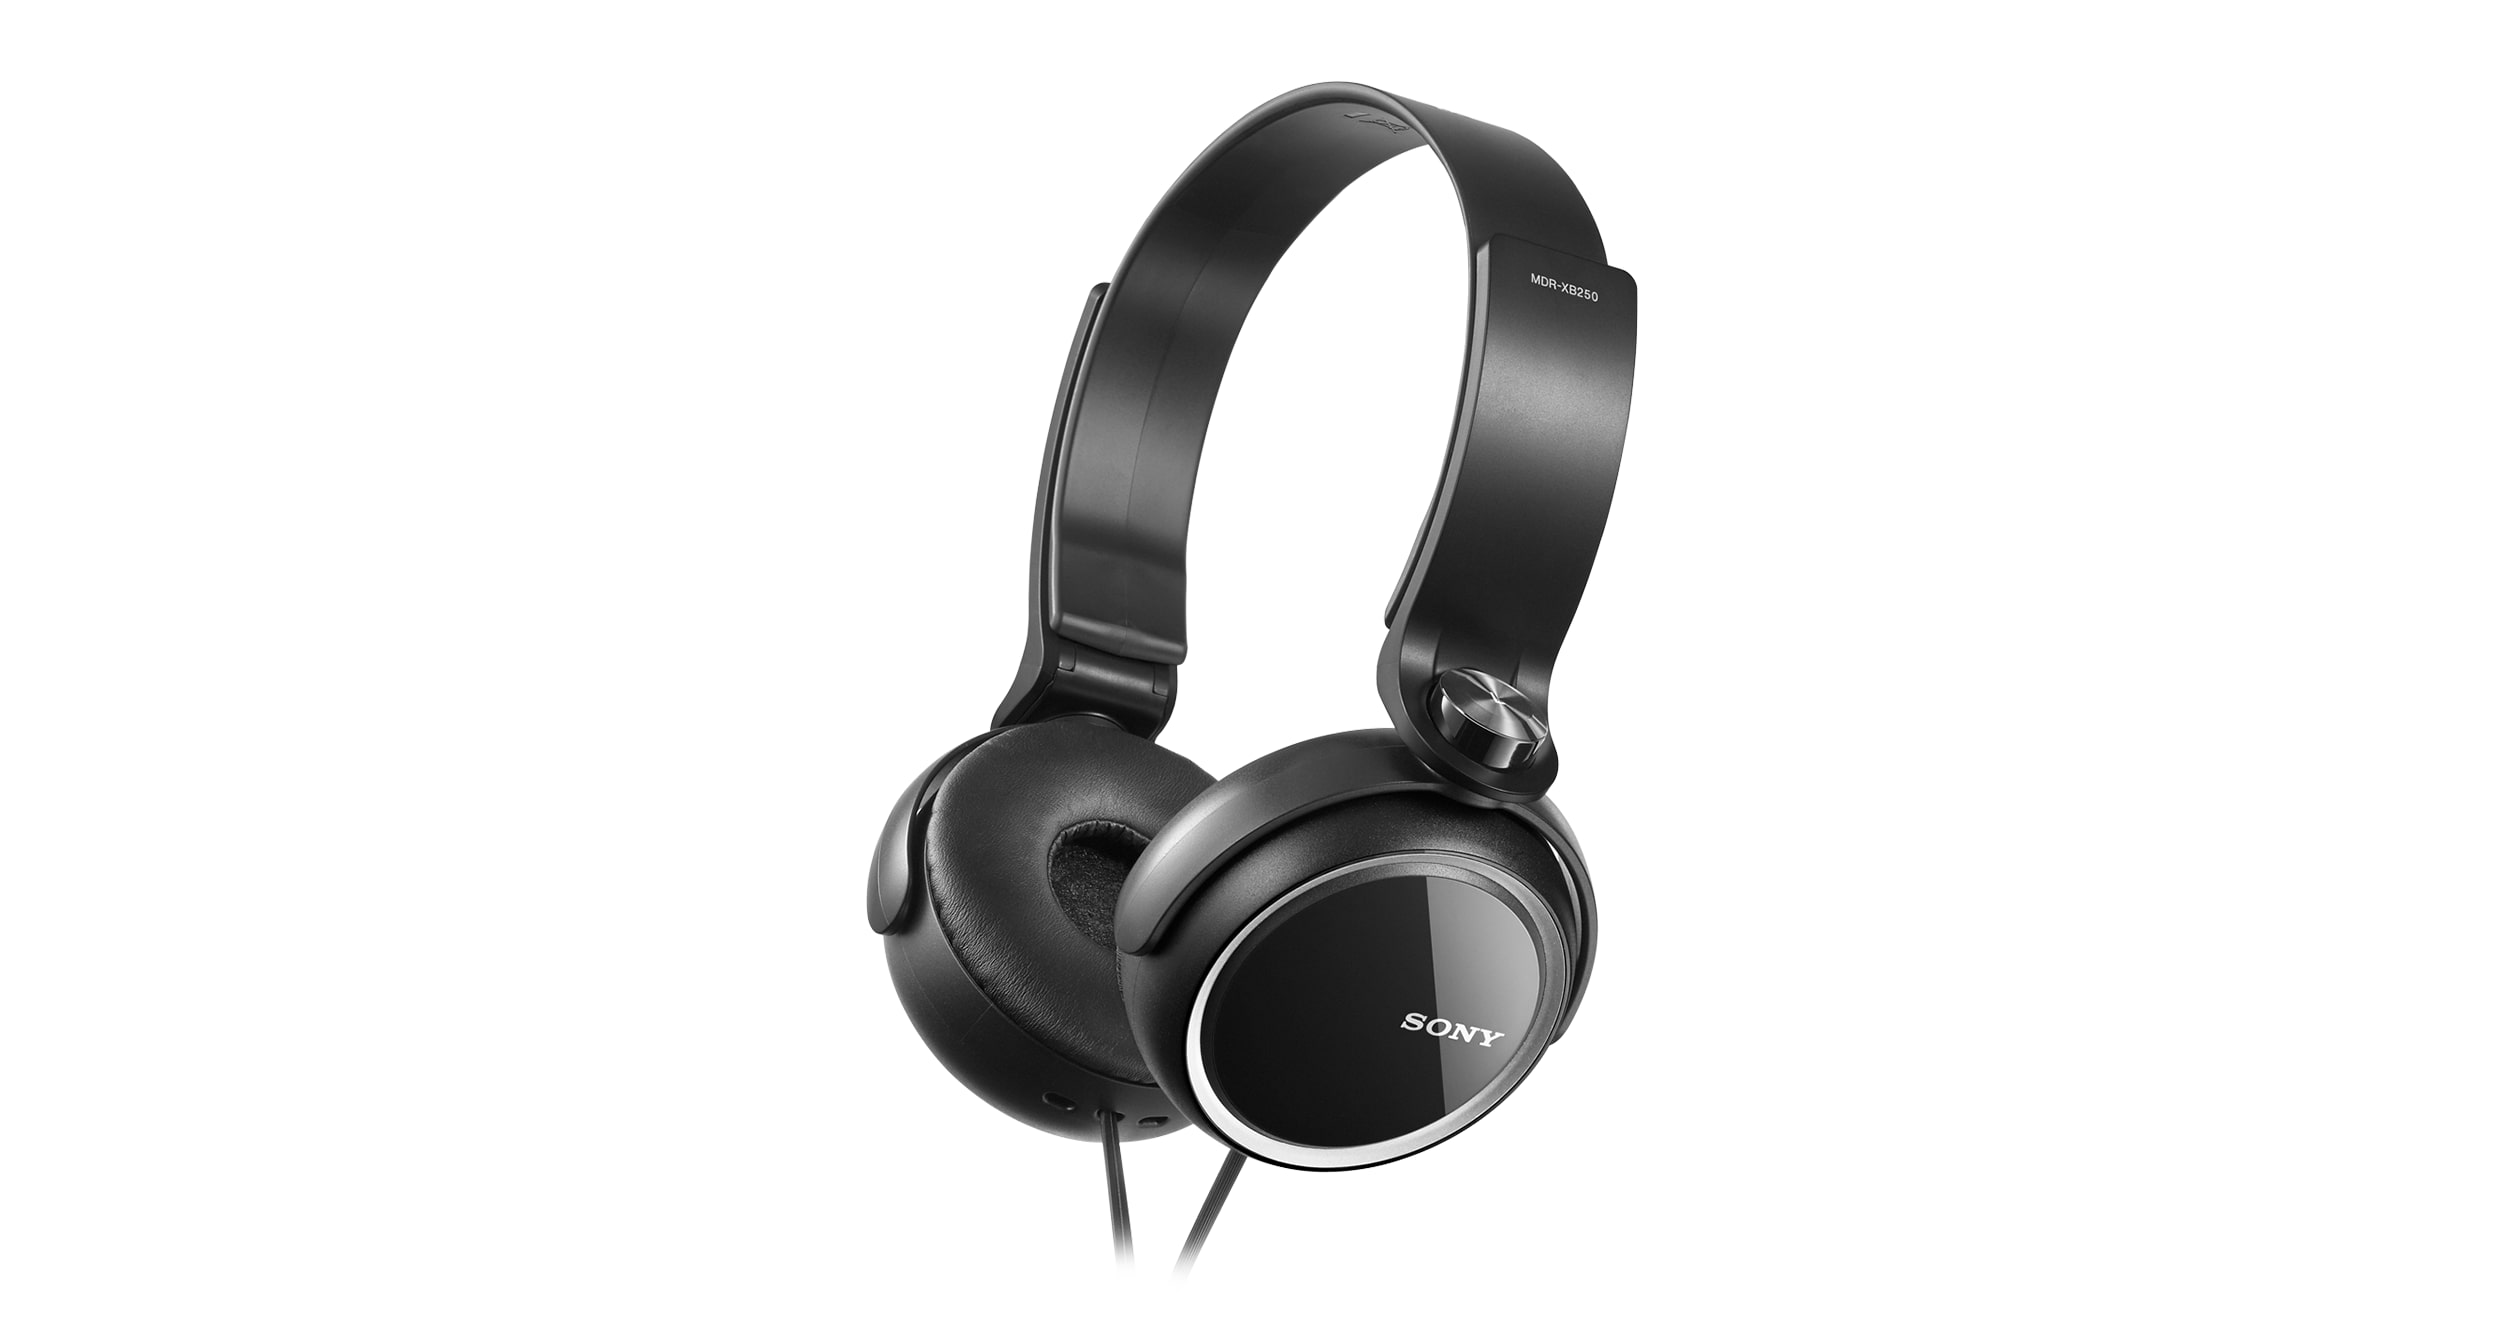 d6d5b6afbe3 XB250 EXTRA BASS Headphones | MDR-XB250 | Sony IN